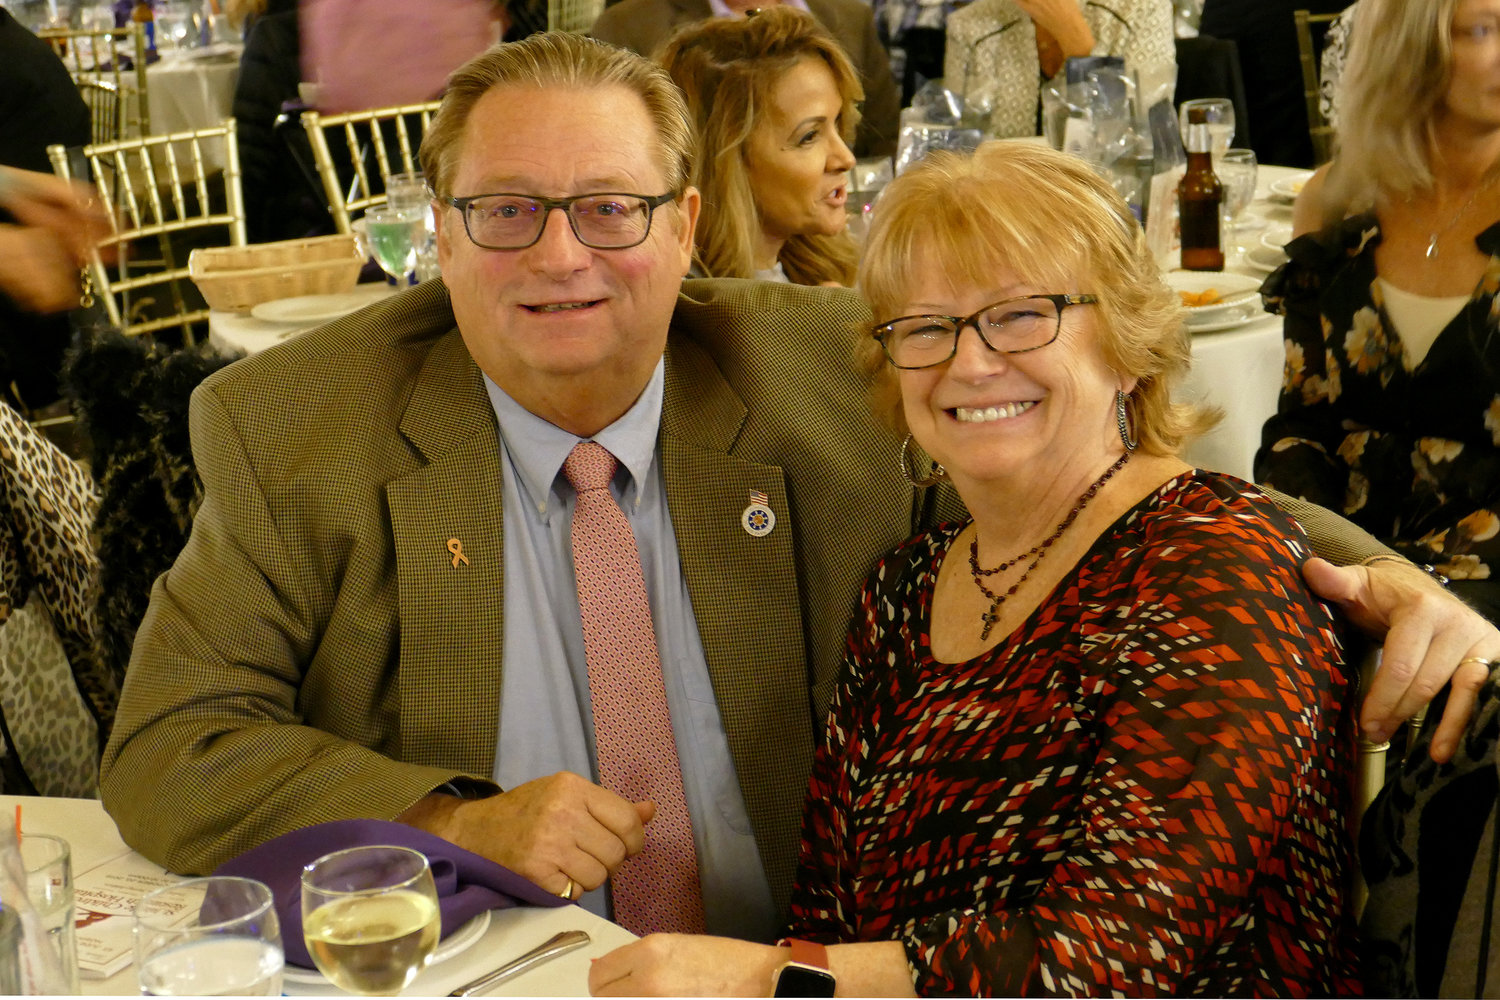 Island Park Mayor Michael McGinty and his wife, Jean, enjoyed dinner at the event.